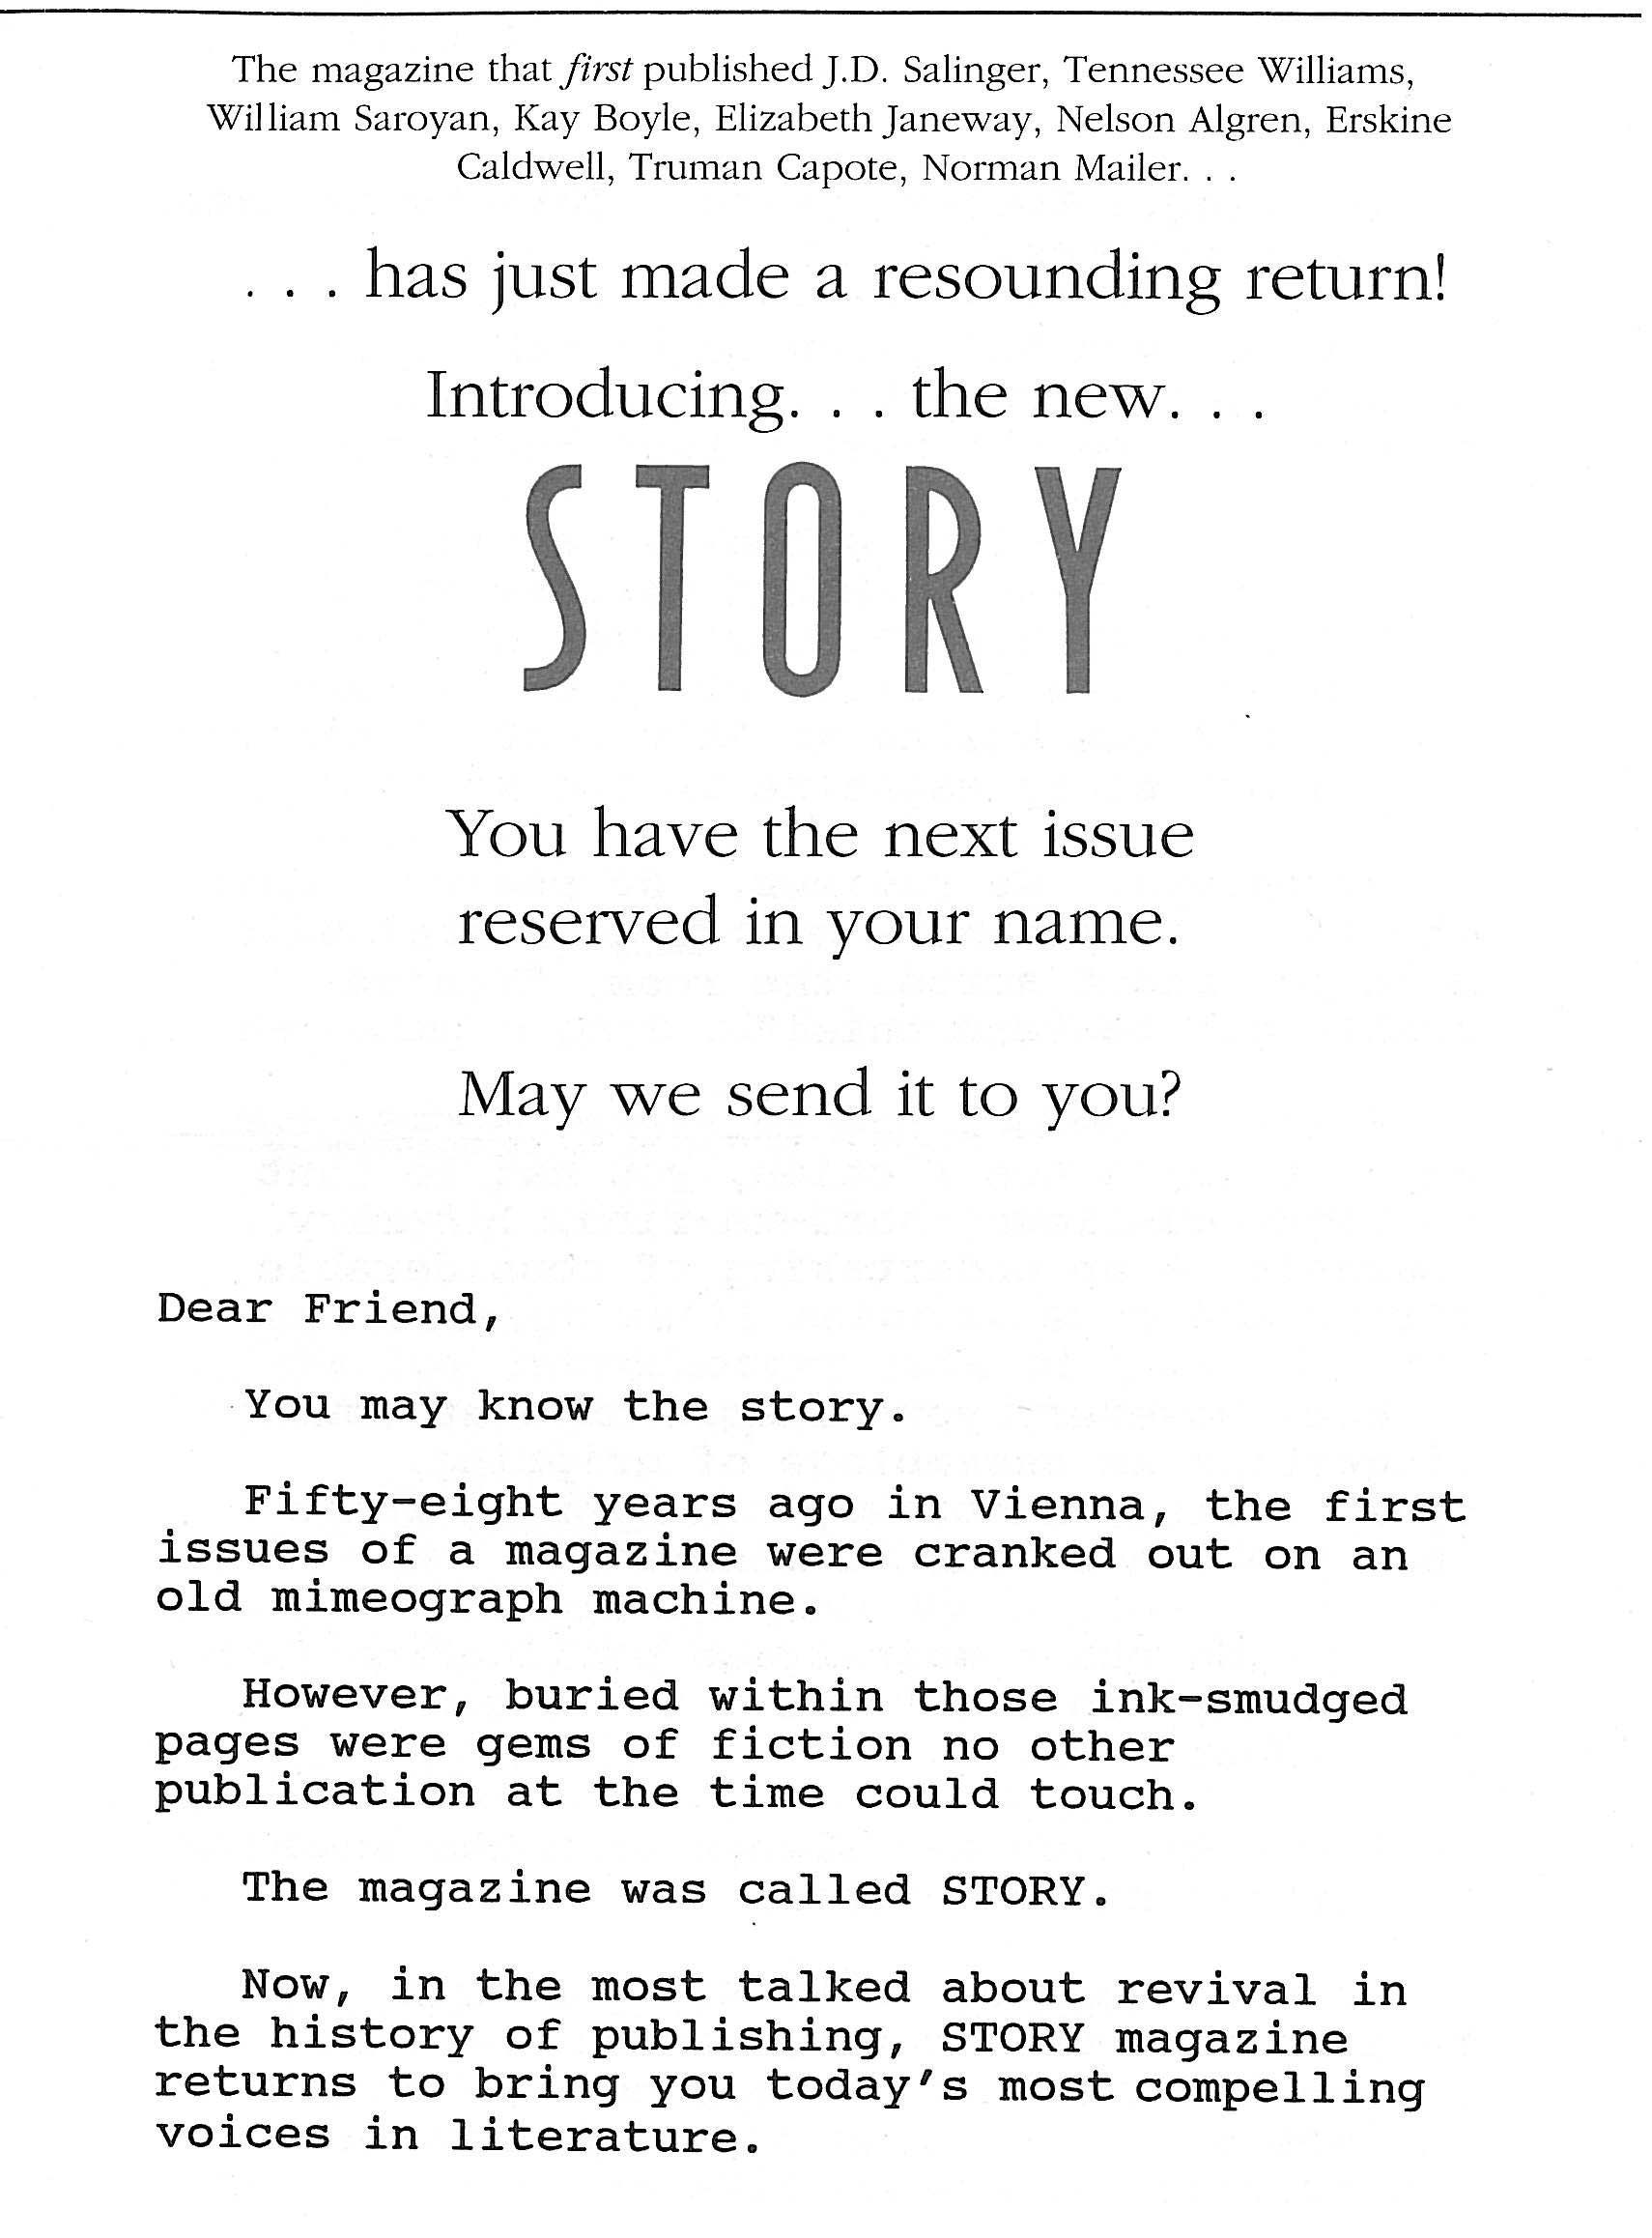 My Direct Mail Sales Letter For Story Magazine Pulled Over 14